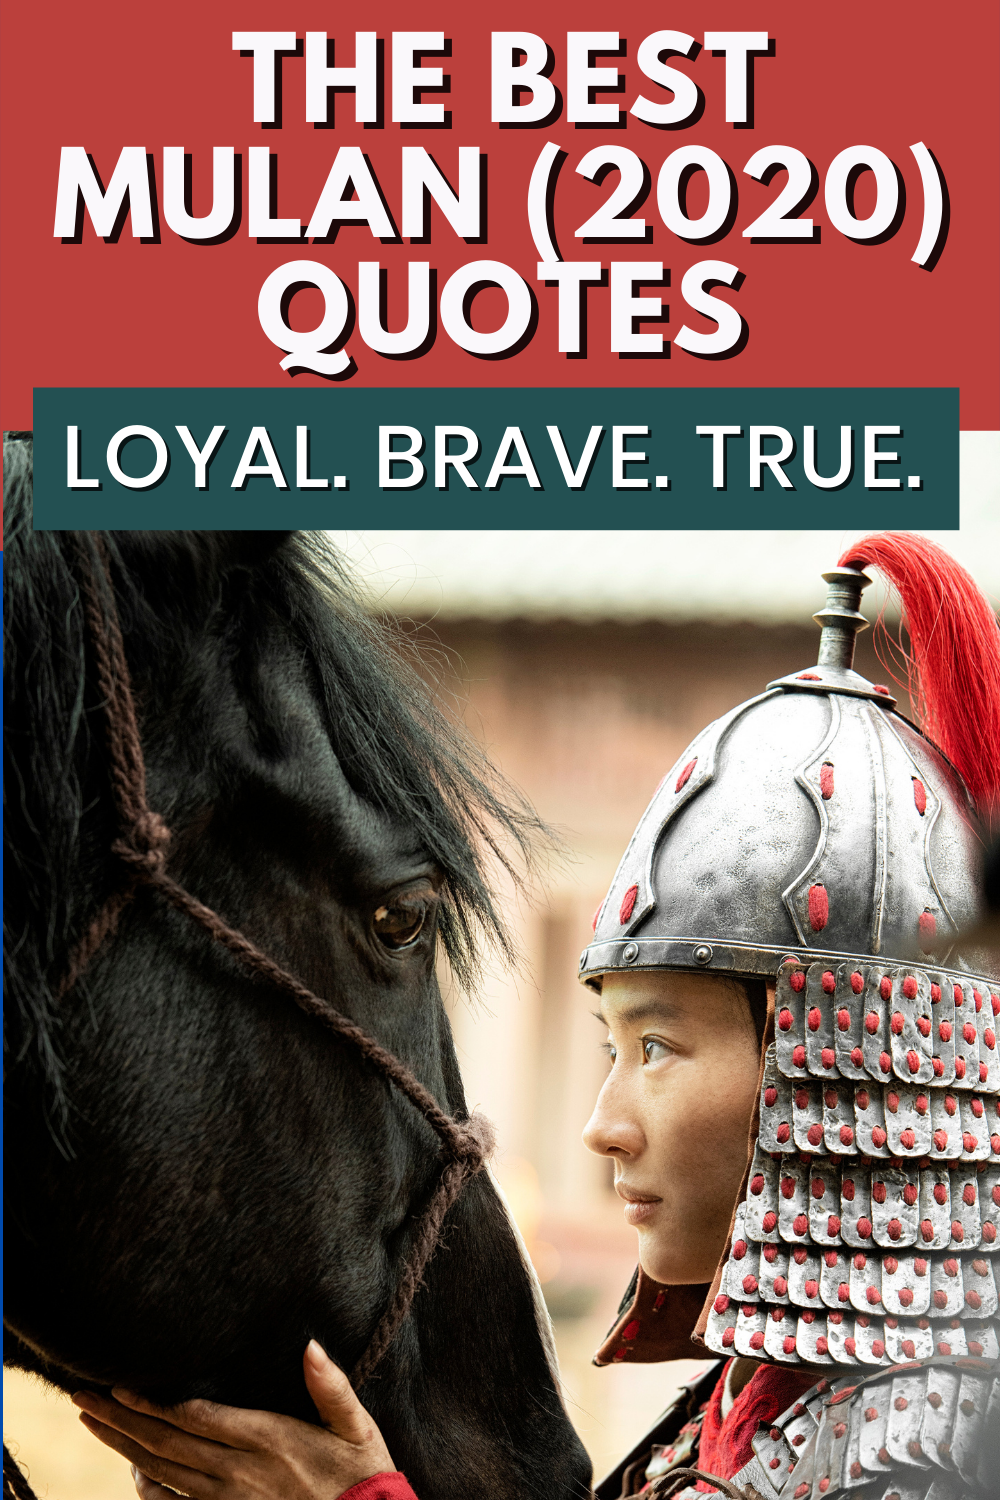 The Best Mulan 2020 Quotes Popcorner Reviews